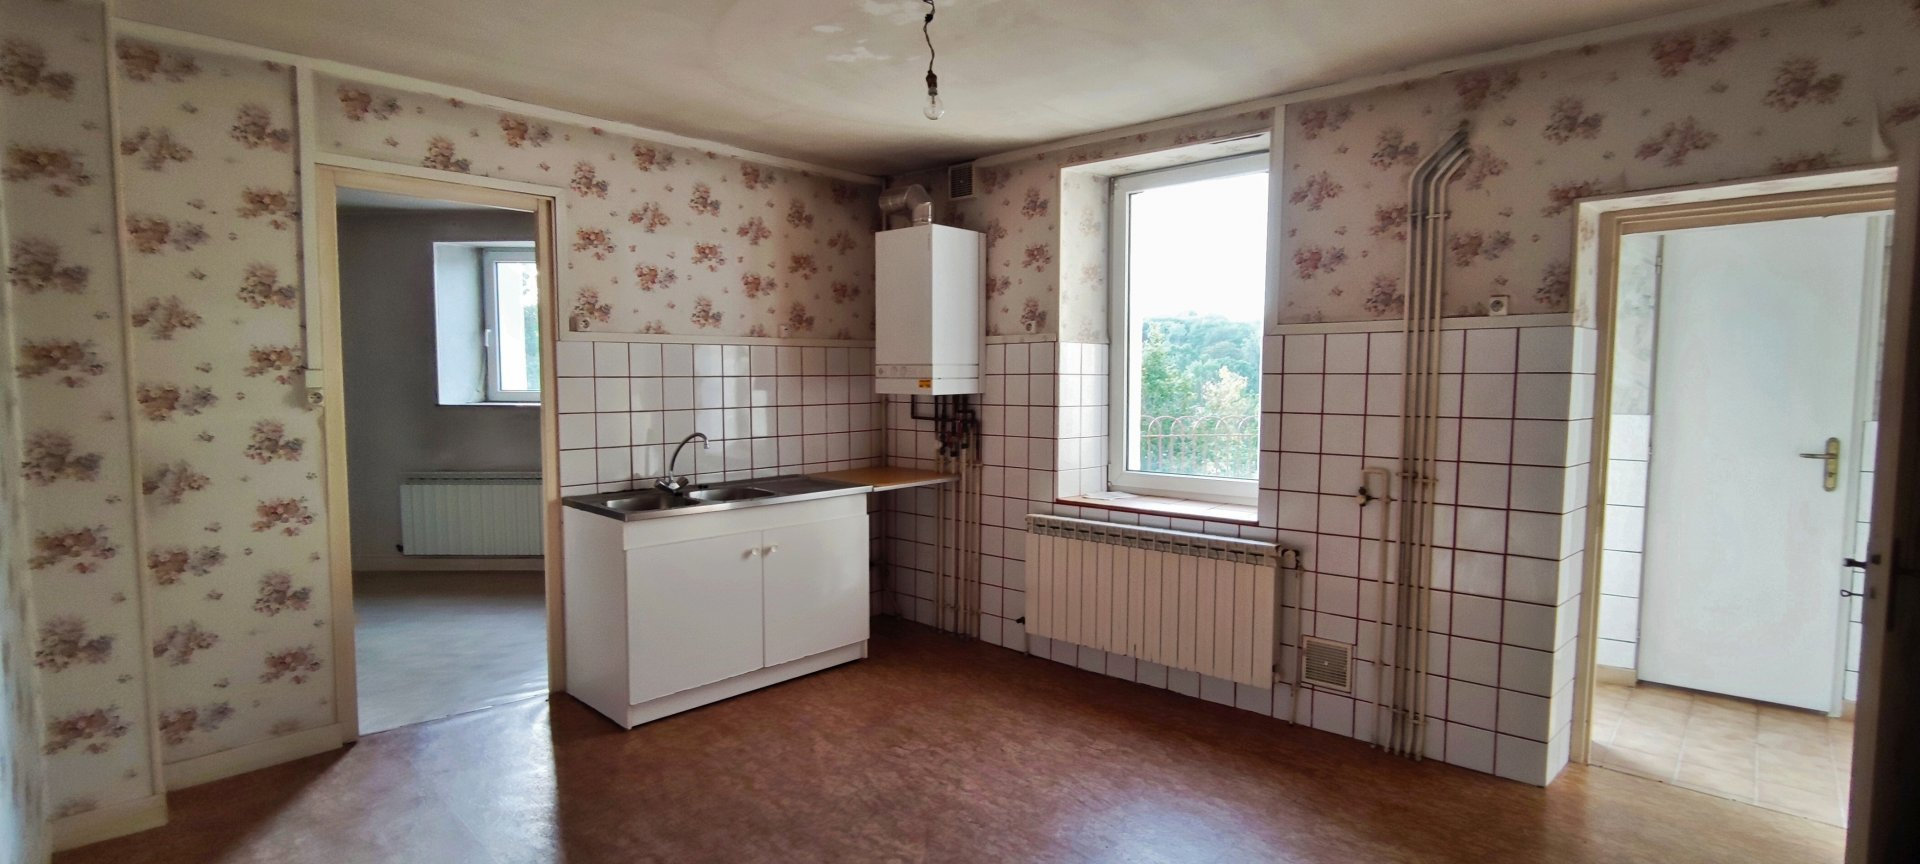 Immeuble 3 appartements 274 m2